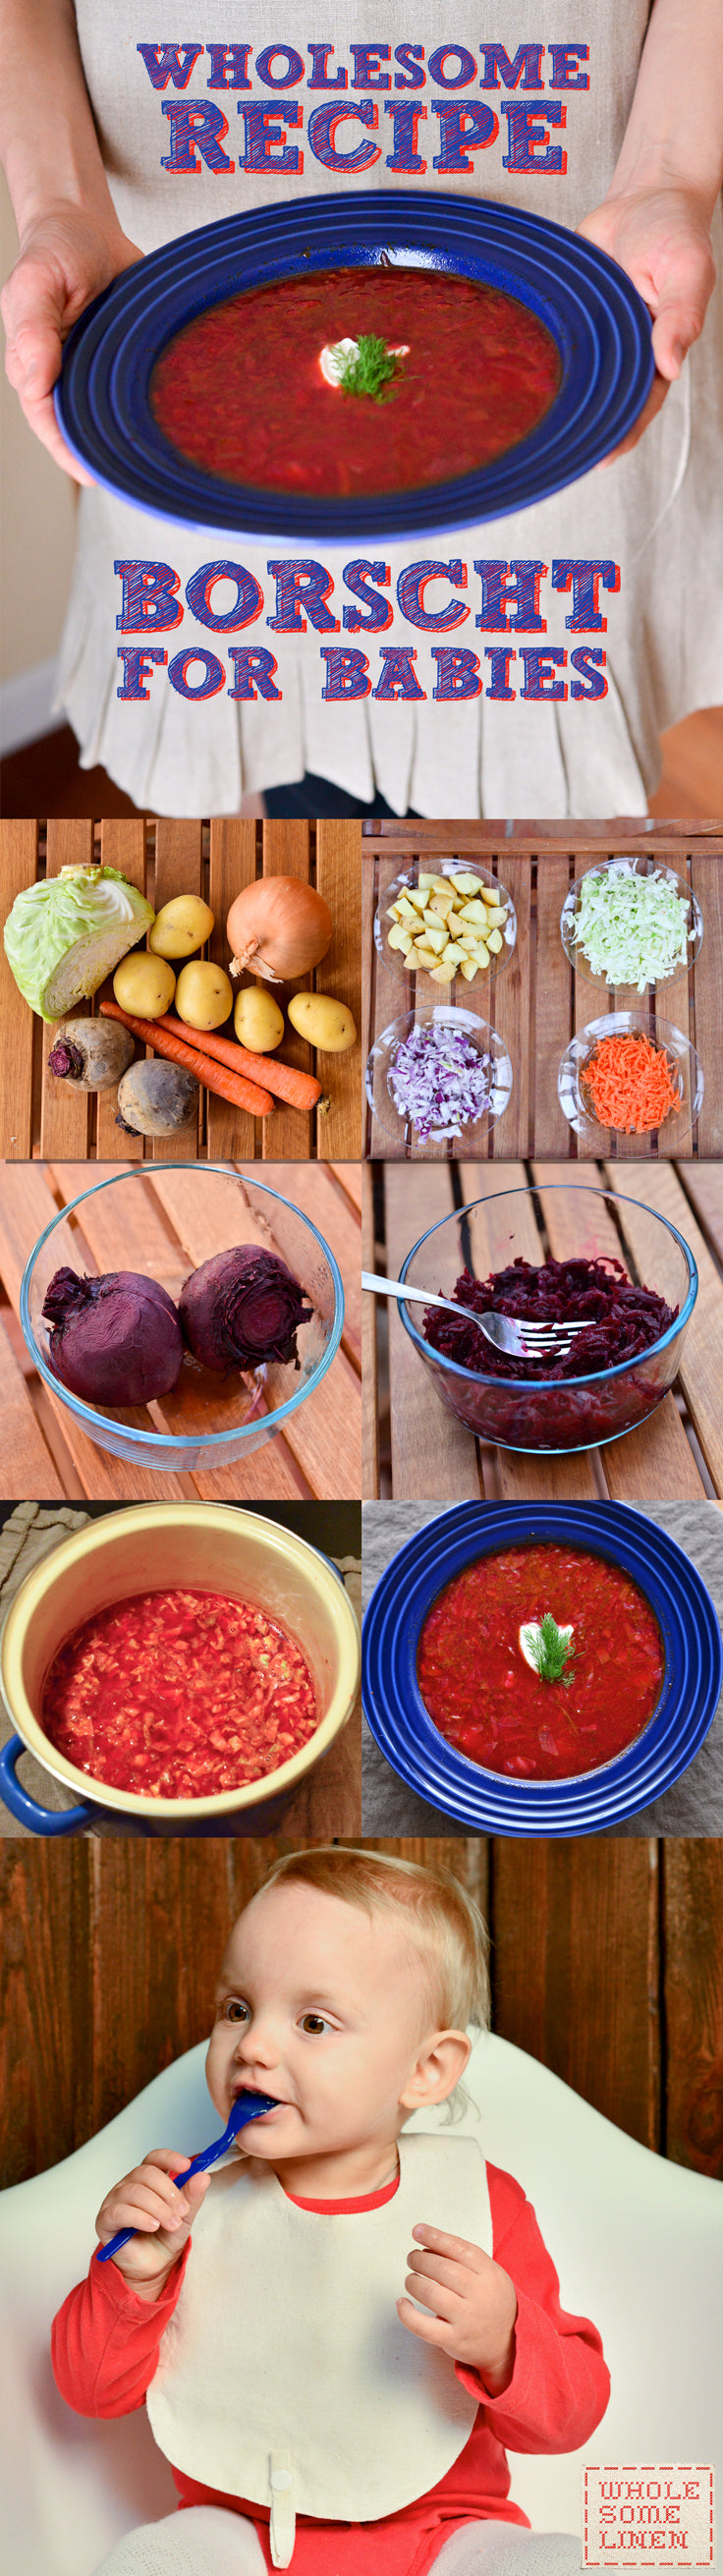 Wholesome Borscht Recipe for Babies